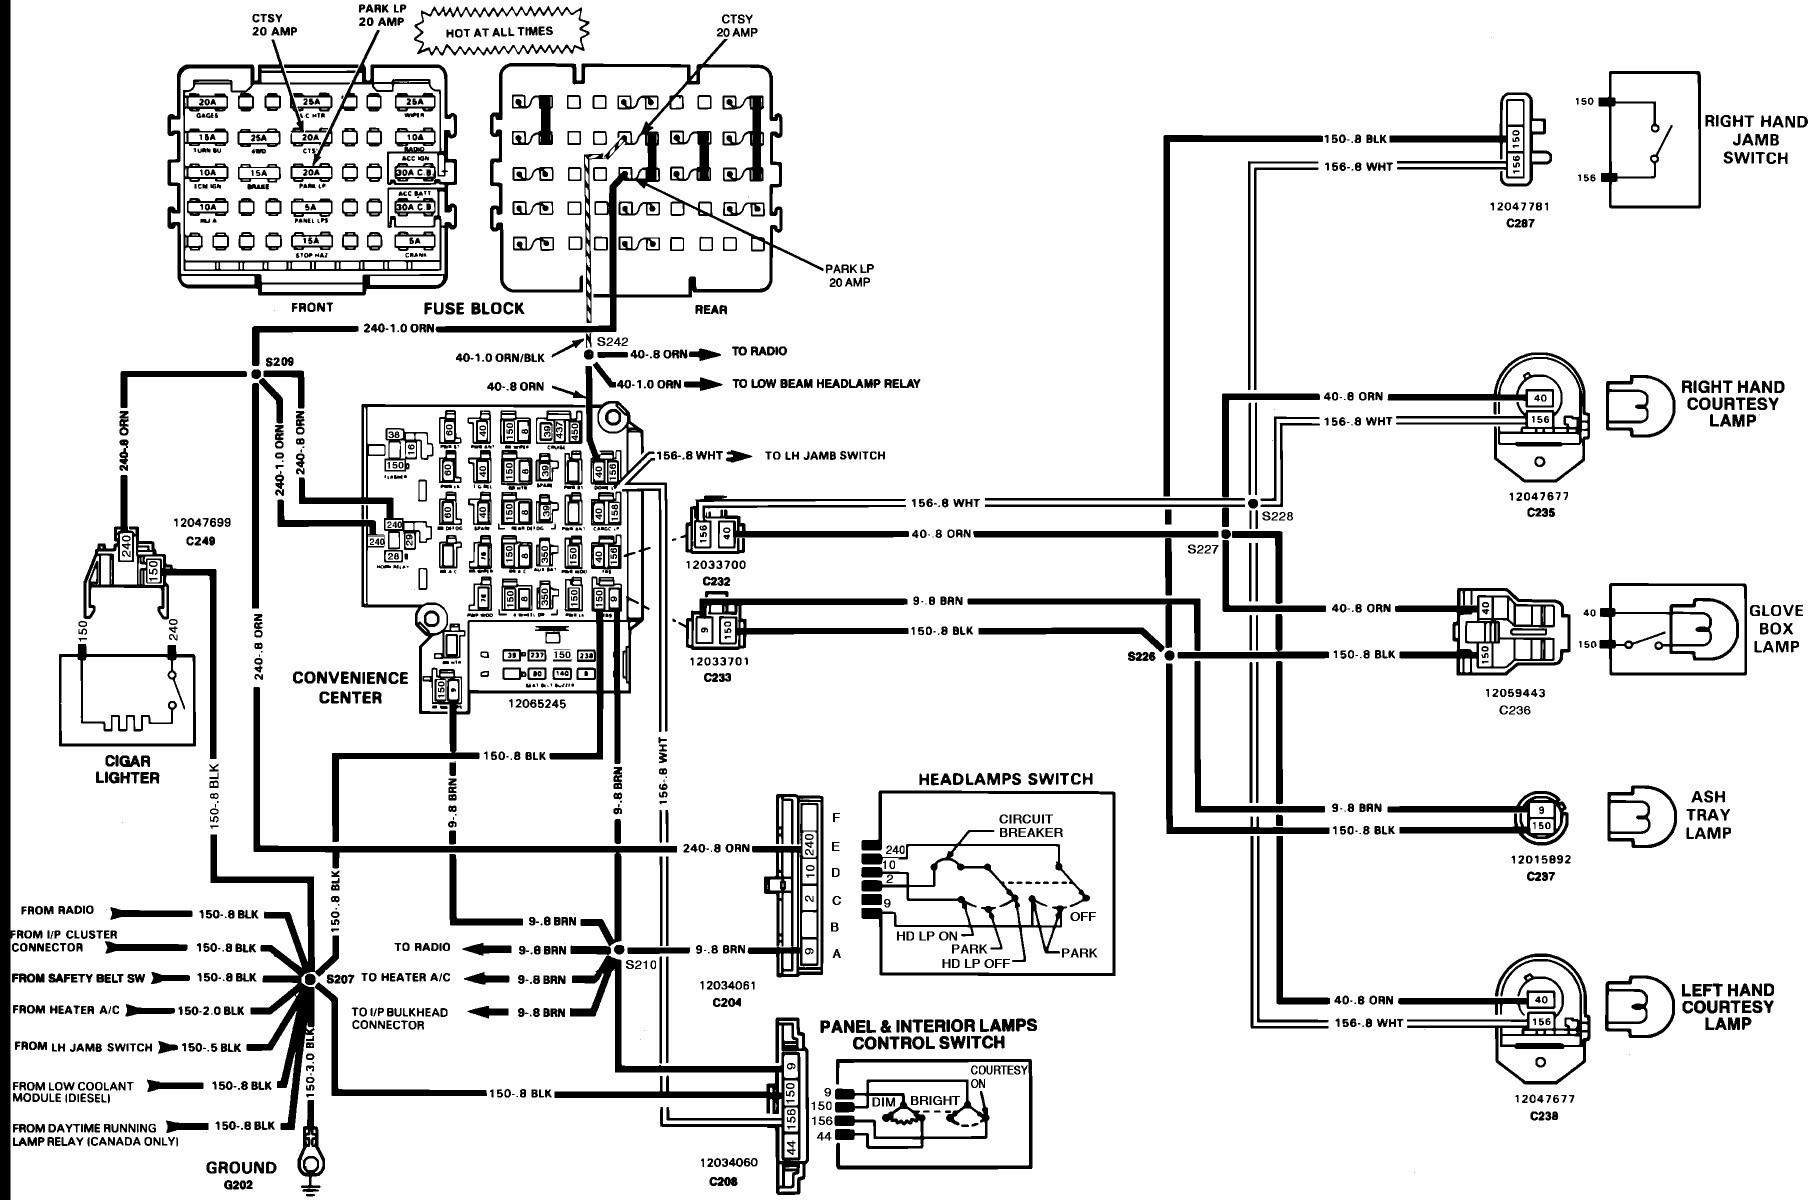 Phenomenal Mopar Alternator Wiring Diagram Wiring Library Wiring Digital Resources Funapmognl